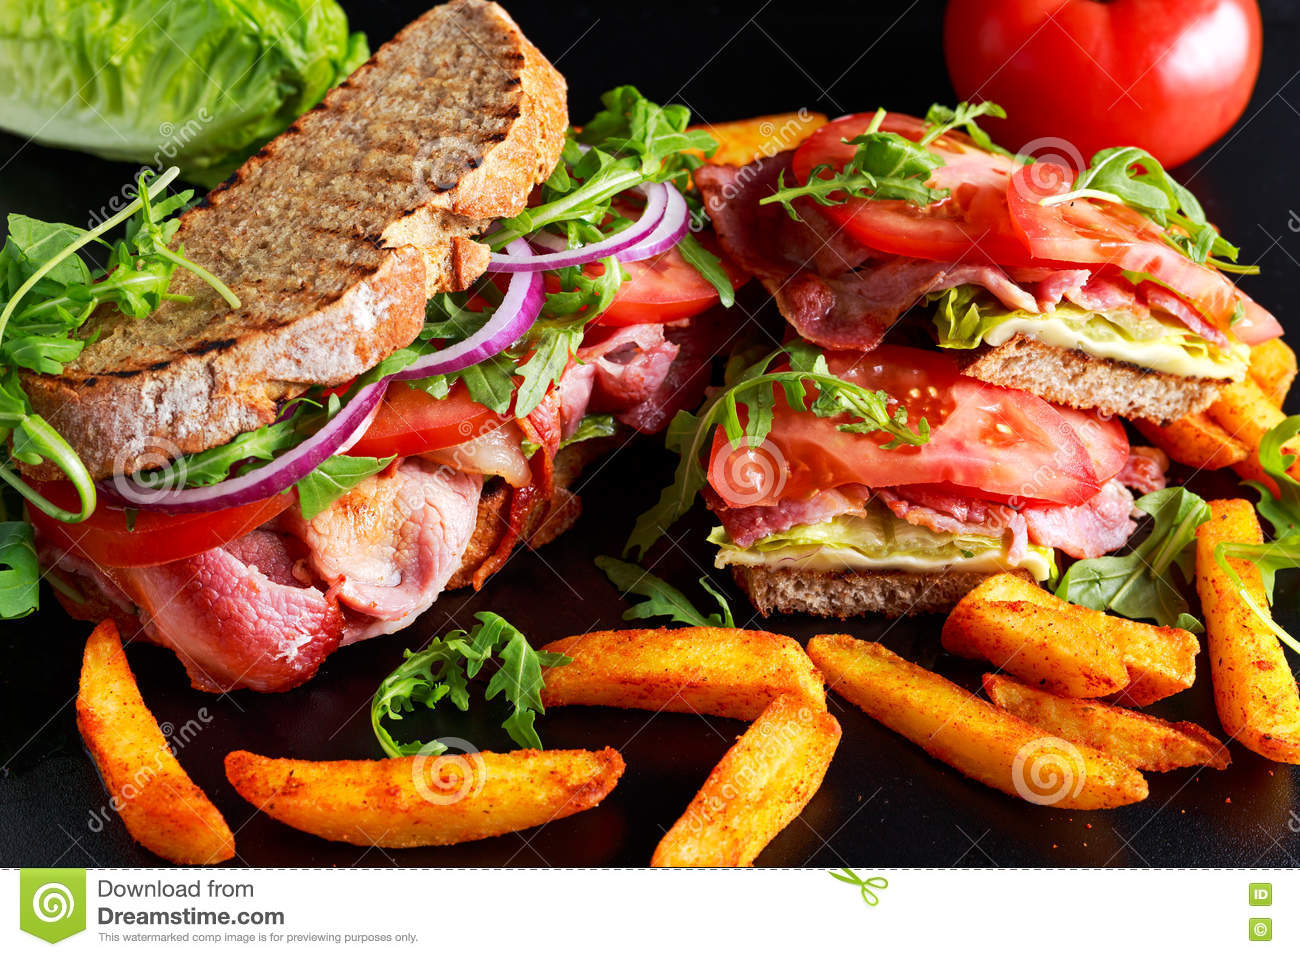 Fresh homemade BLT sandwich on grilled bread with bacon, lettuce, beef tomato, red onions, wild rocket and chips